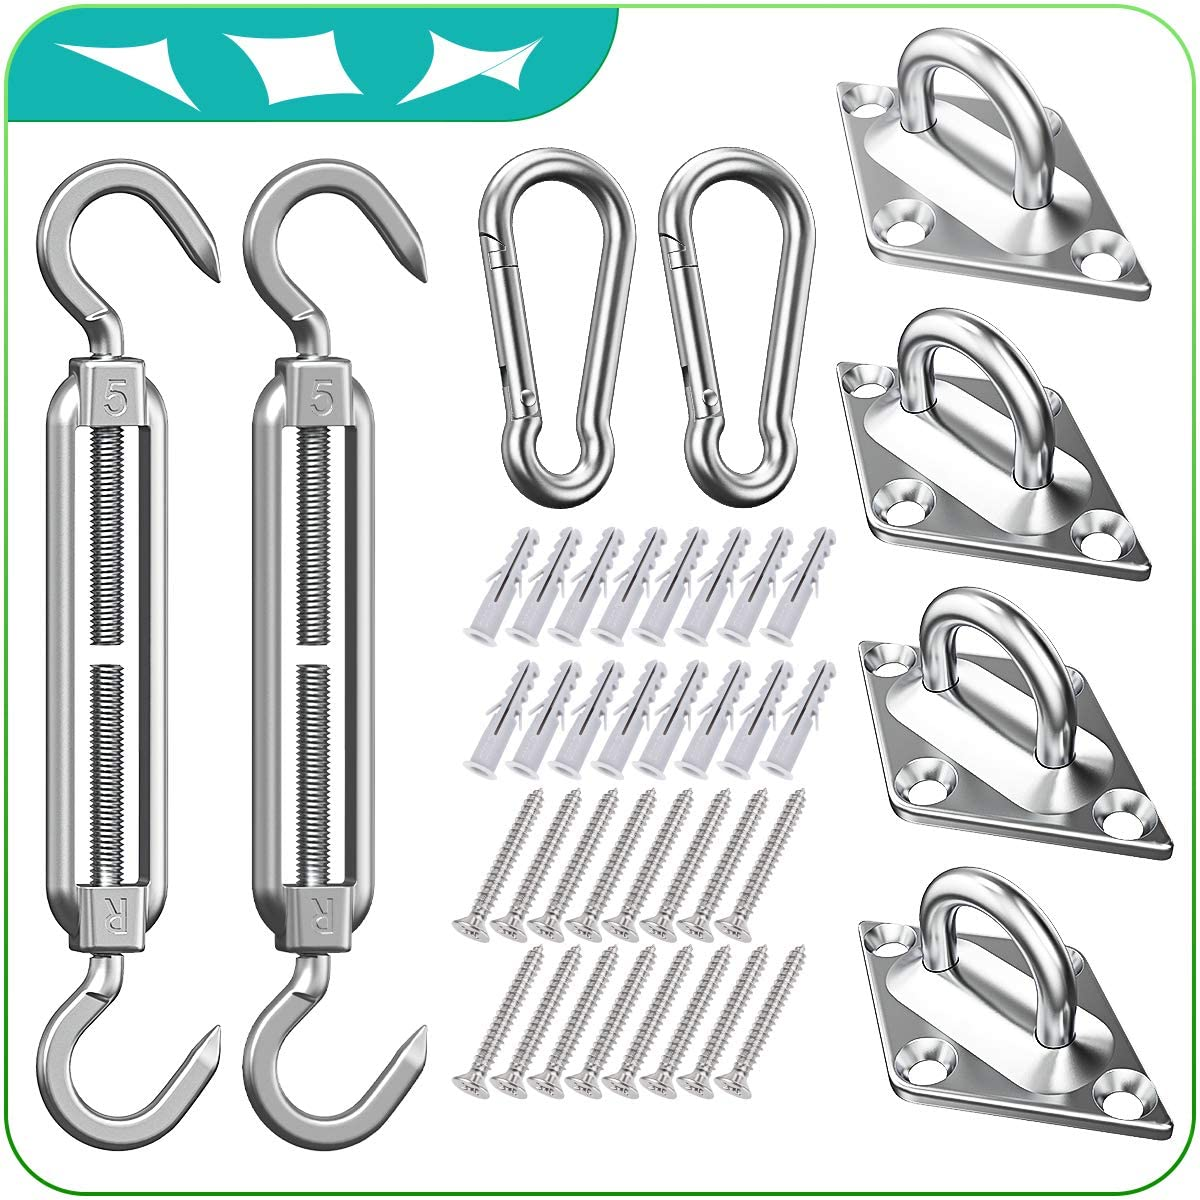 HELEMAN Shade Sail Hardware Kit for Rectangle/Square Sun Shade Sail Installation in Patio Lawn and Garden, Anti-Rust Sail Shade Hardware Kit of Heavy Duty (40Pcs)